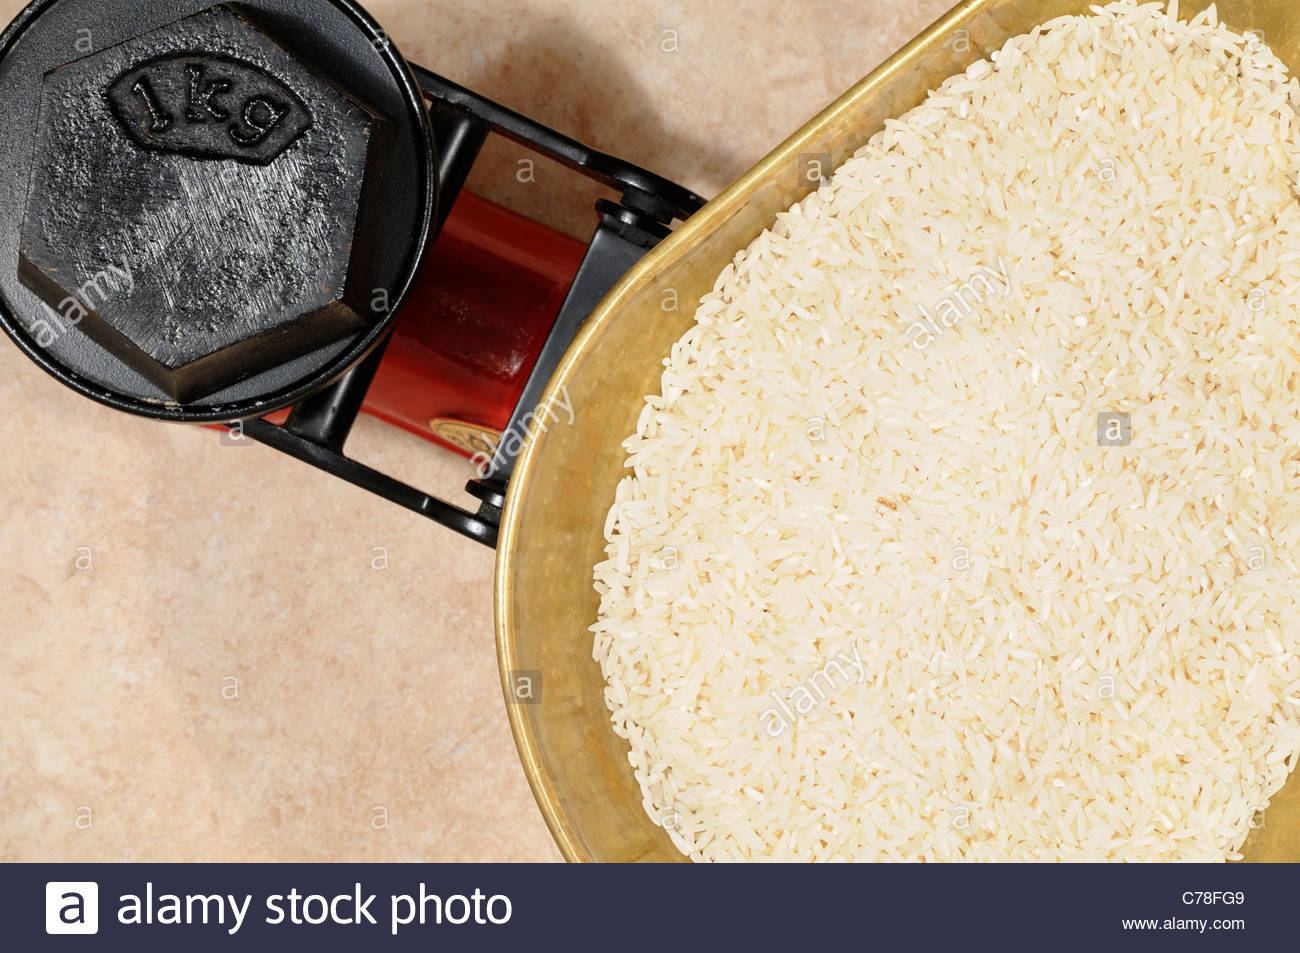 Rice grains on Kitchen scales 1kg, England Stock Photo